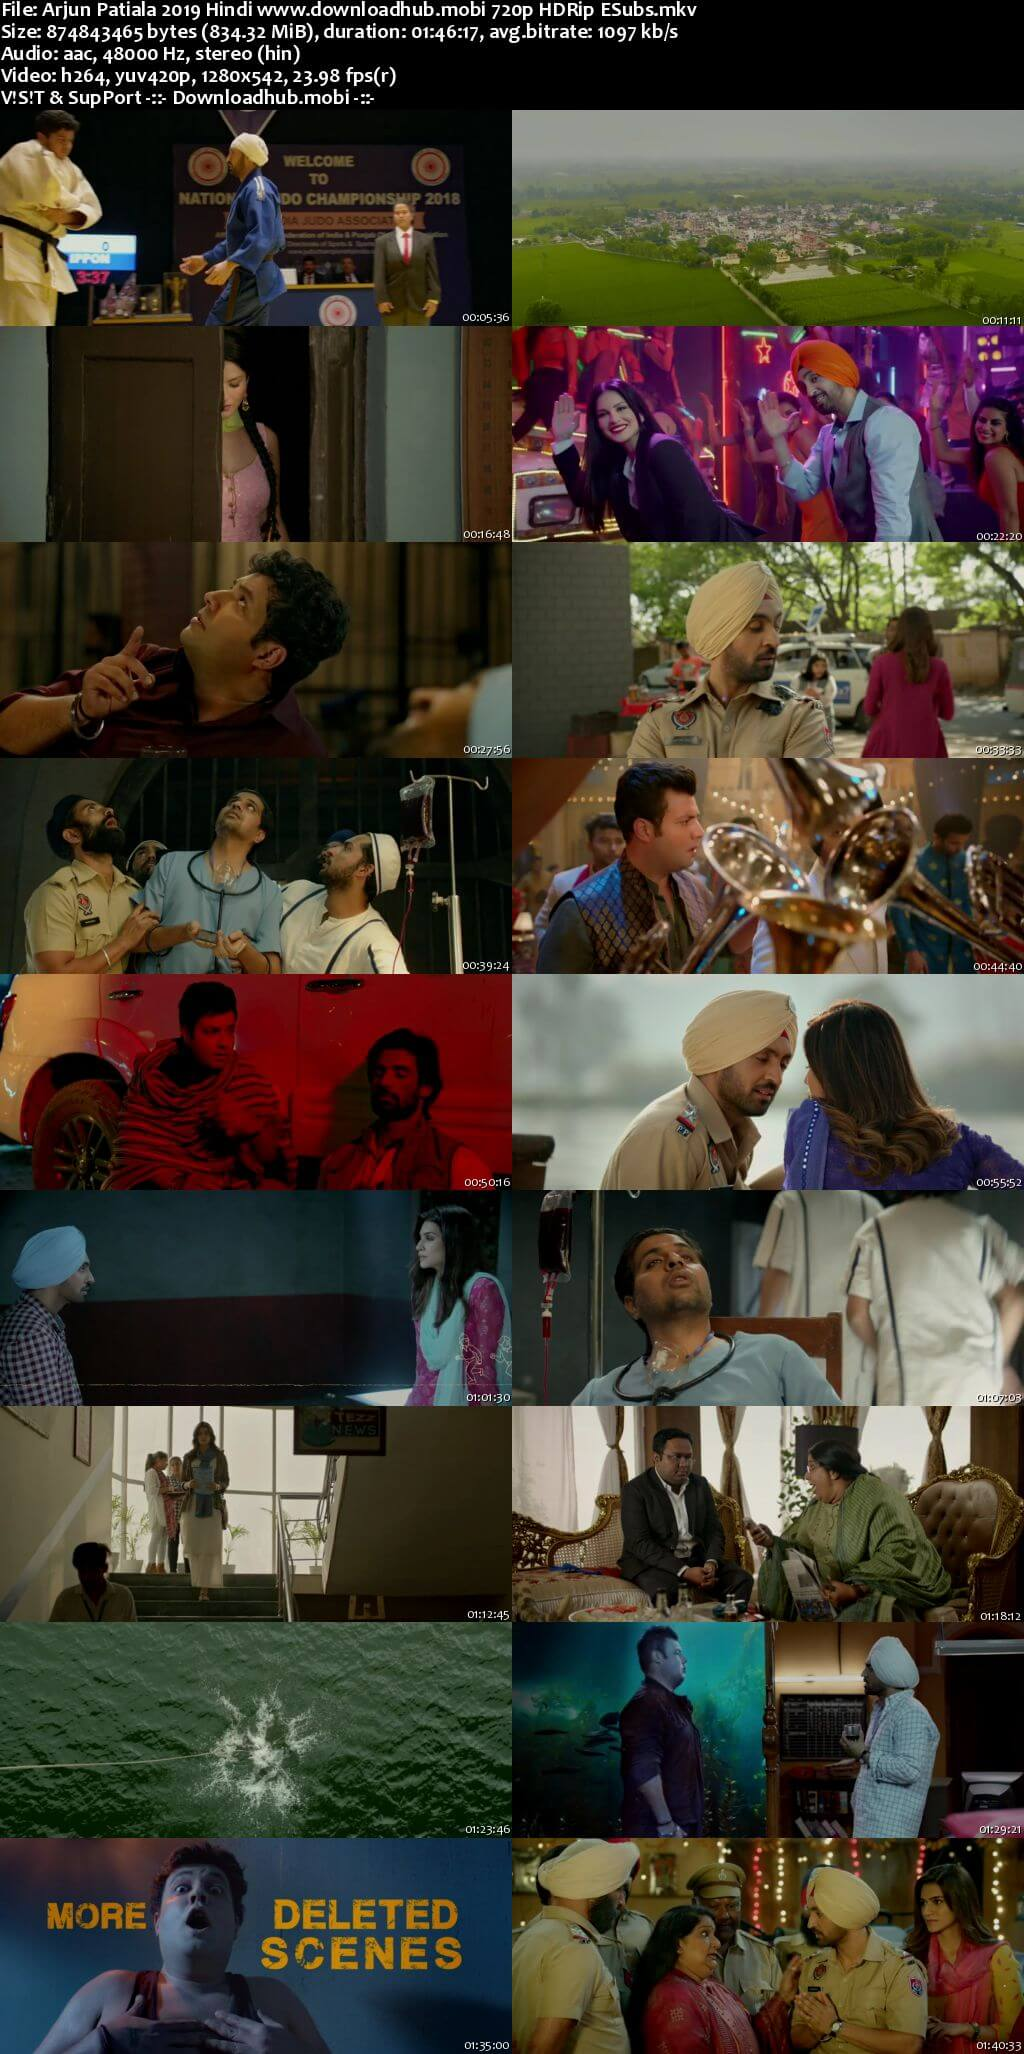 Arjun Patiala 2019 Hindi 720p HDRip ESubs